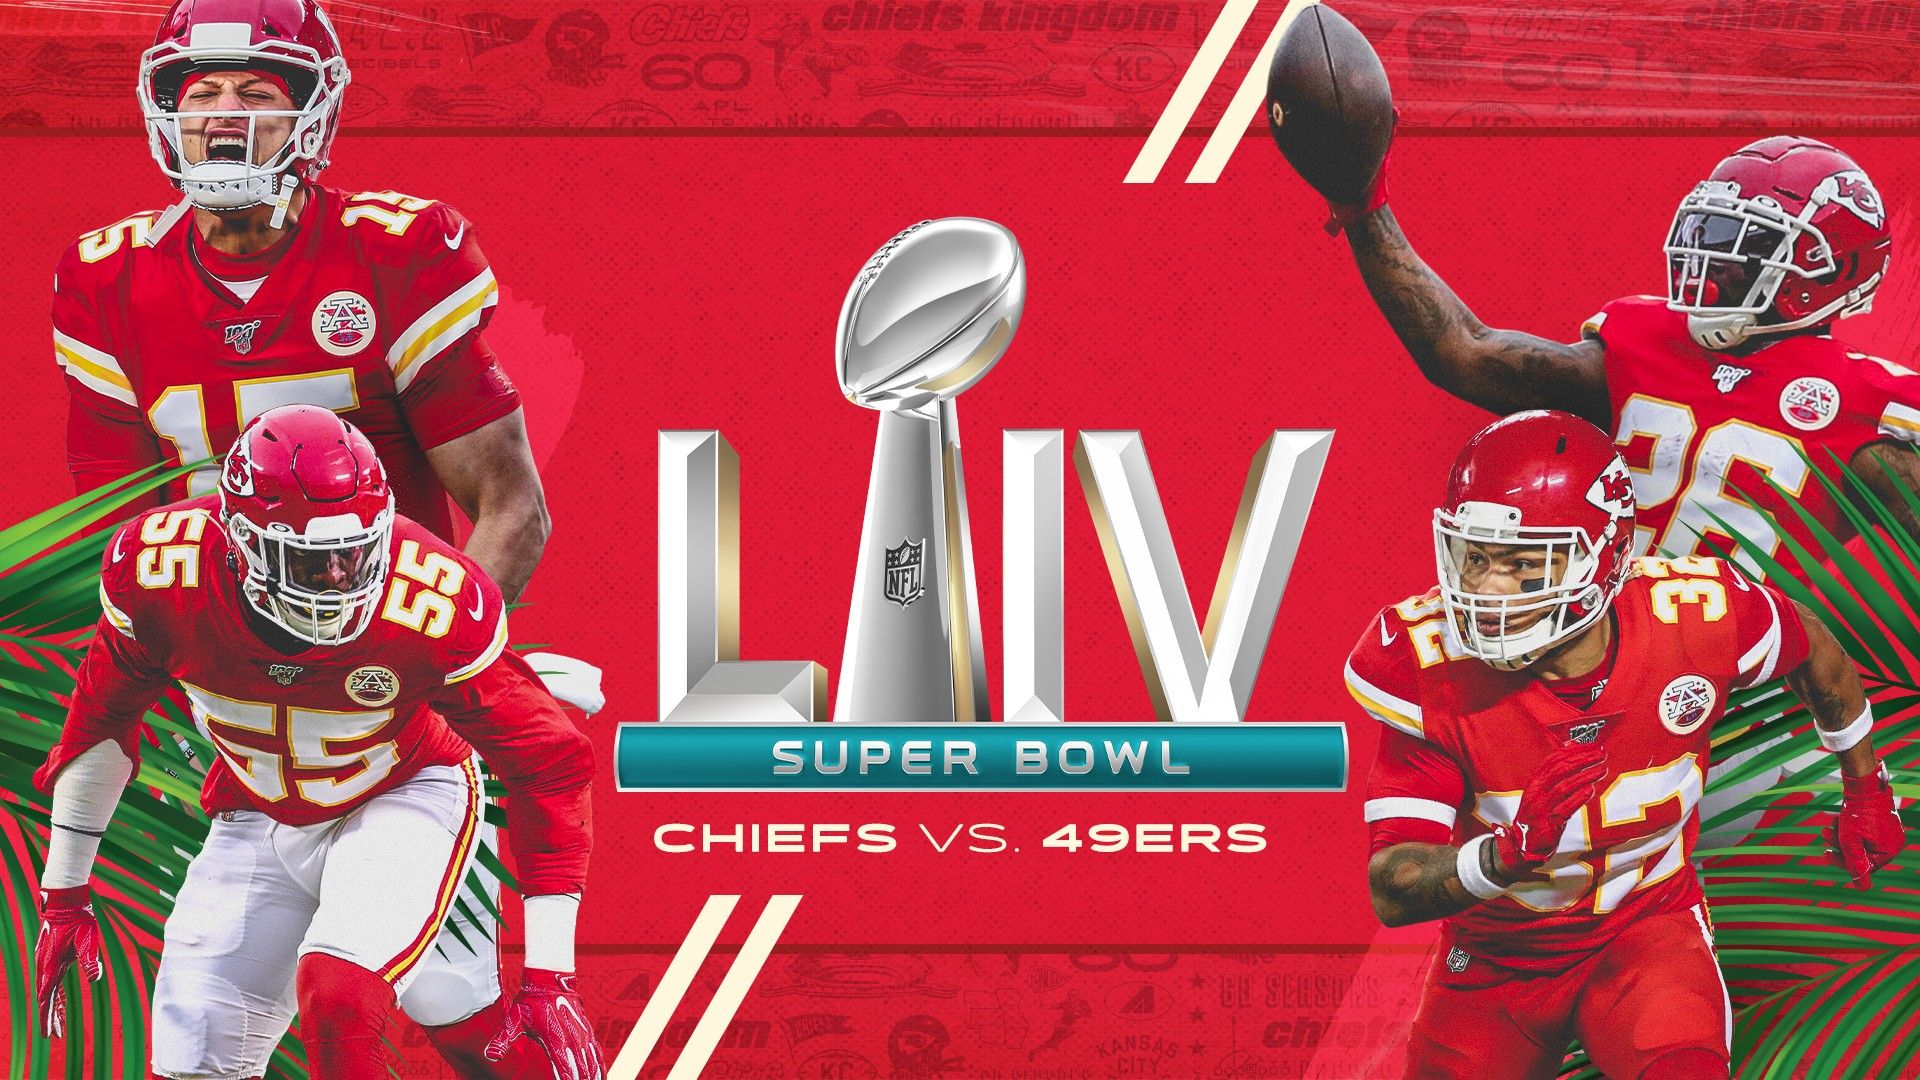 Pin By Jessica Turner Caryl On Sports In 2020 Chiefs Super Bowl Kansas City Chiefs Kc Chiefs Football